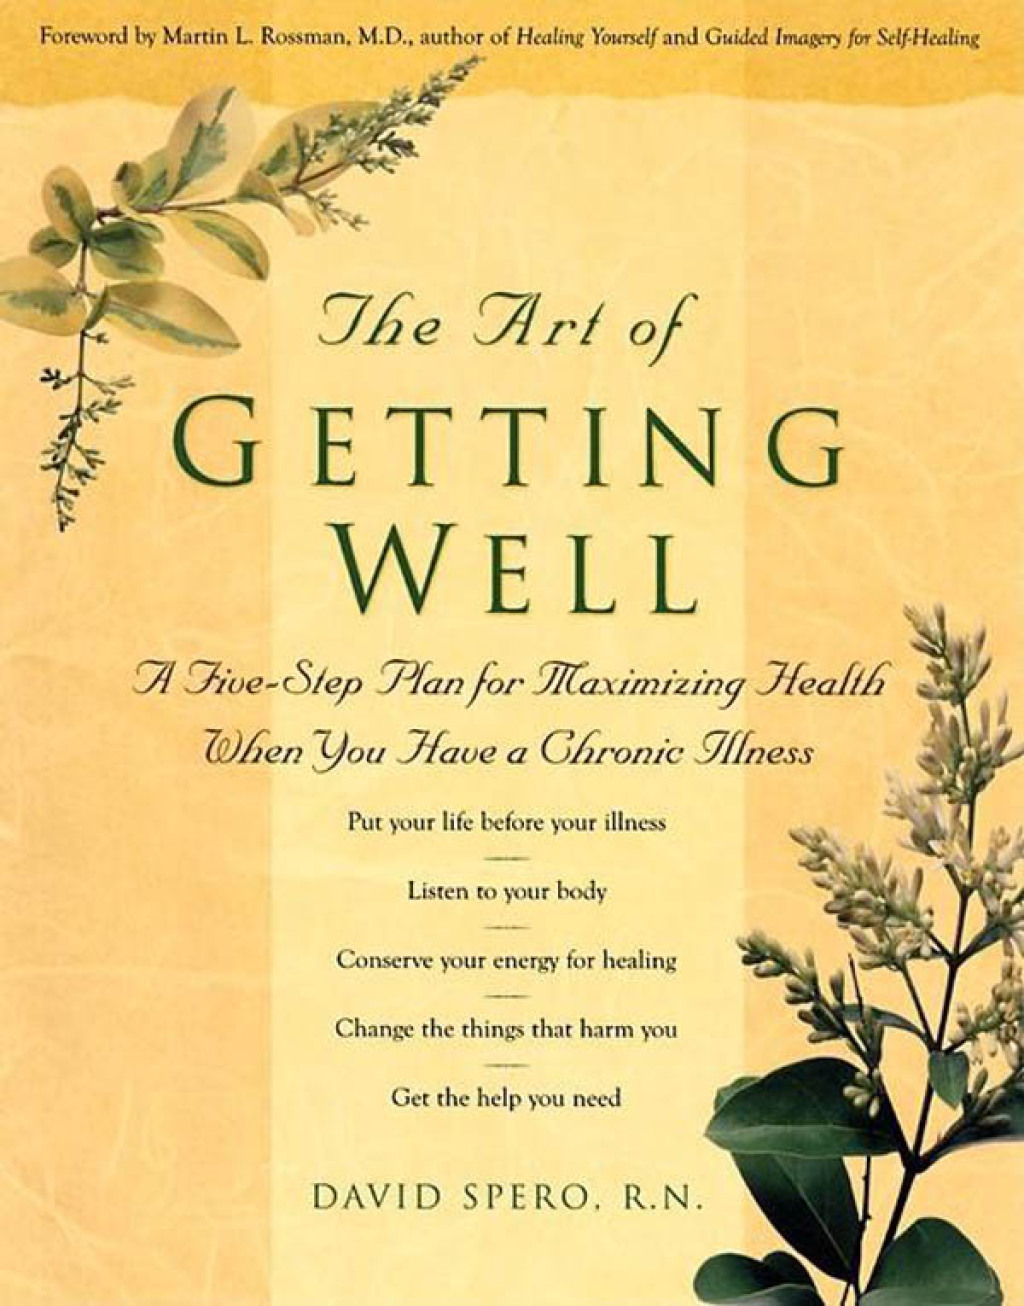 The Art of Getting Well (ebook) eBooks